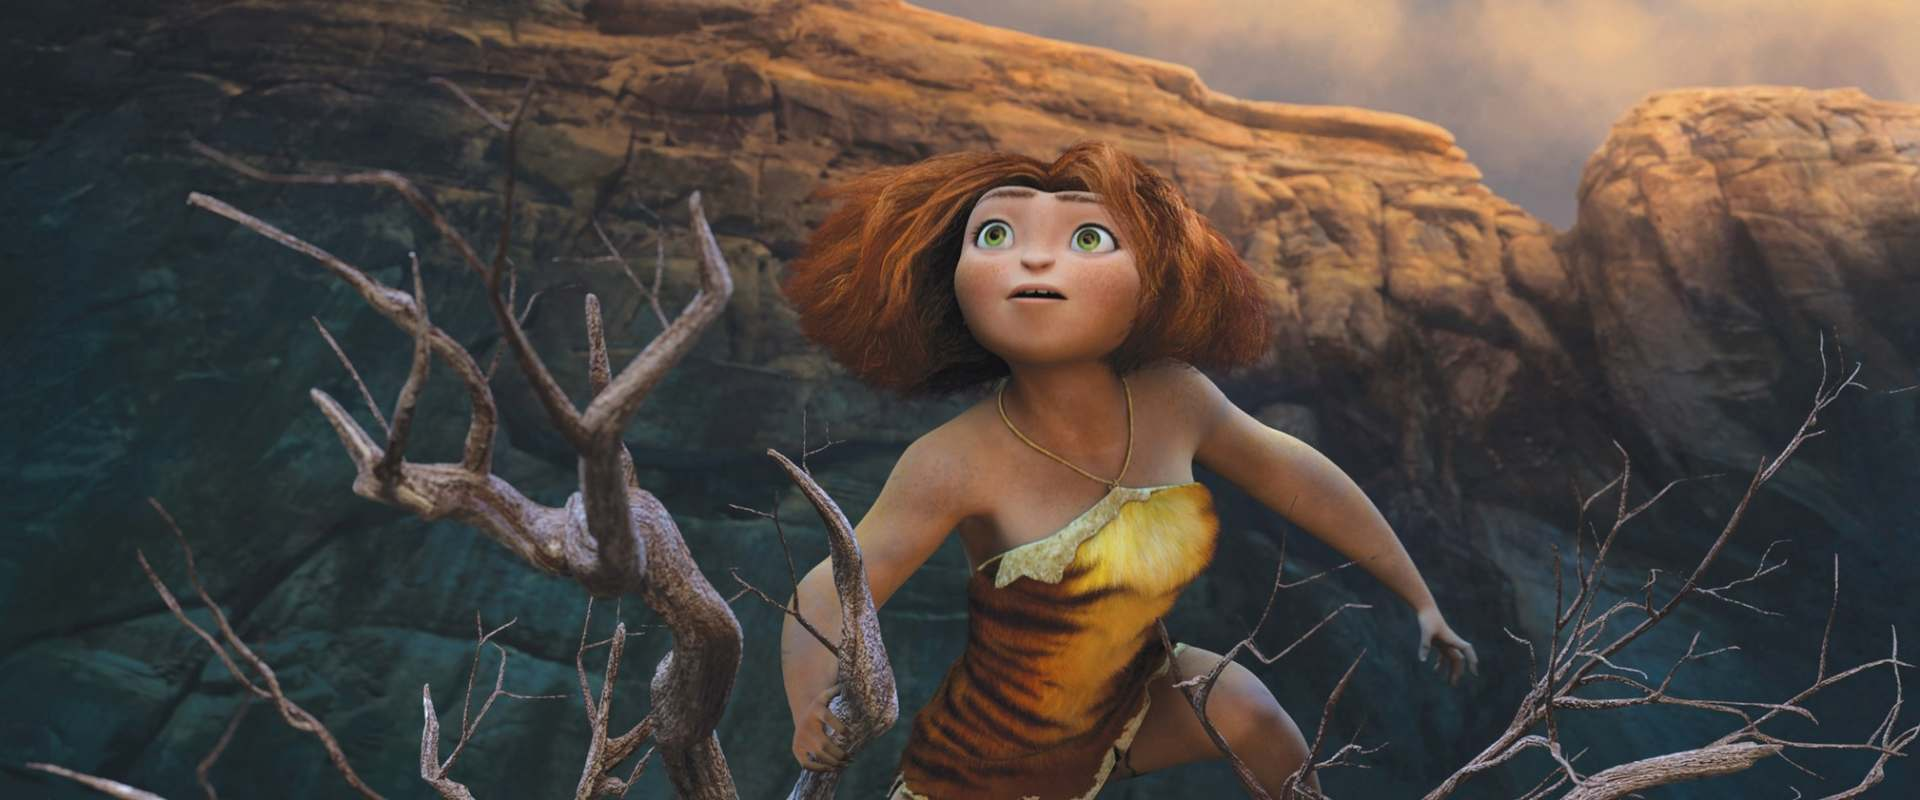 The Croods background 2